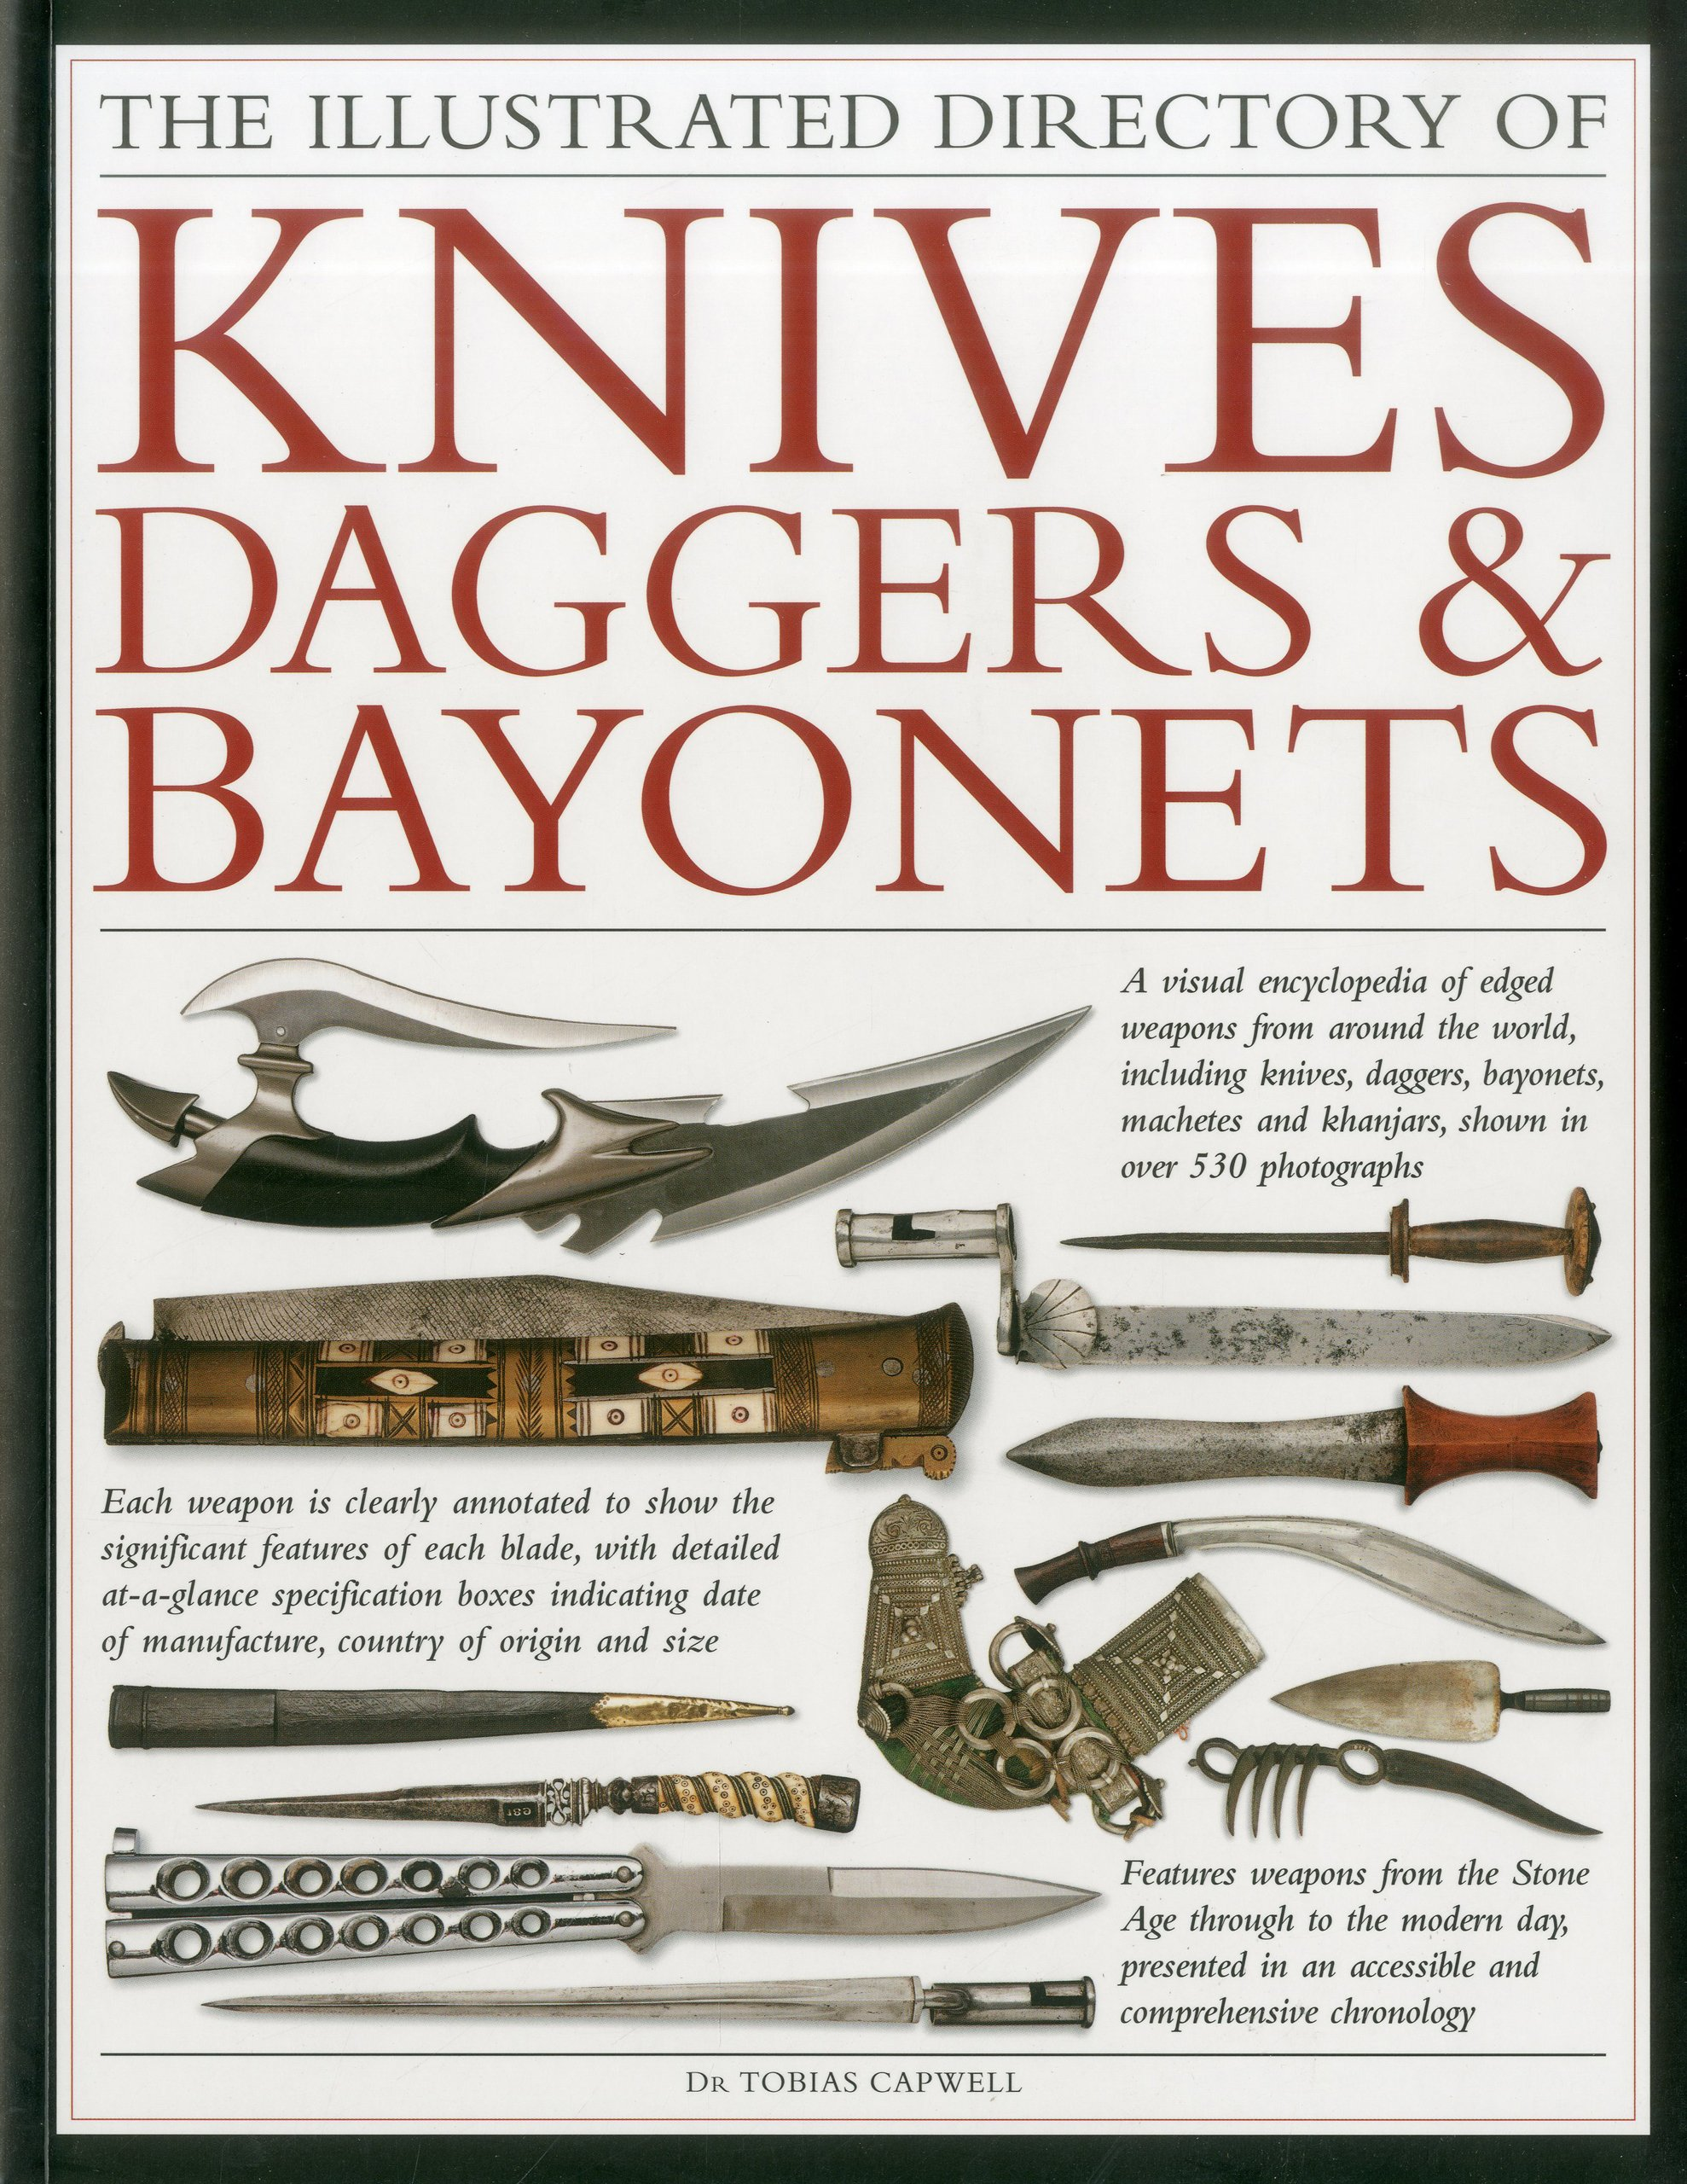 The Illustrated Directory of Knives, Daggers & Bayonets: A visual encyclopedia of edged weapons from around the world, including knives, daggers, ... and khanjars, with over 500 illustrations